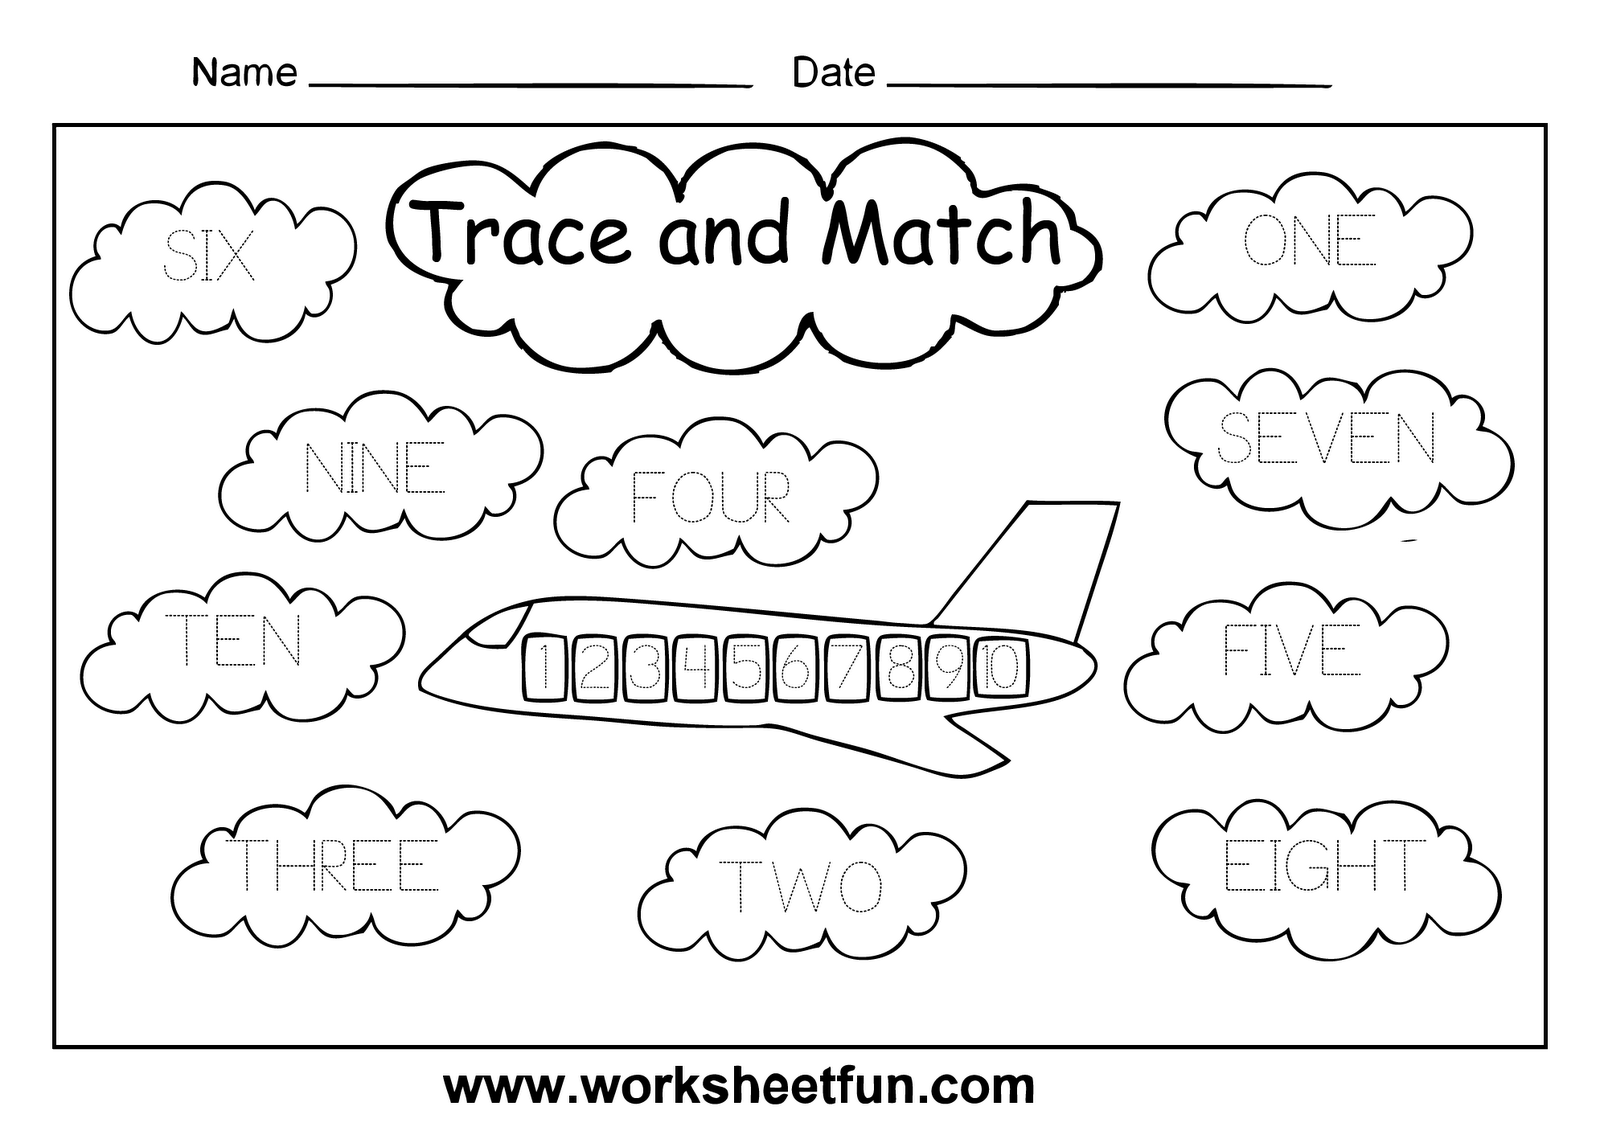 Weirdmailus  Stunning Worksheet Numbers    Reocurent With Foxy Kinder Phonics Worksheets Besides Double Consonants Worksheets Furthermore Tracing Worksheets Printable With Delightful Tape Measure Worksheets Also Homophone Worksheets Th Grade In Addition Printable Math Worksheets Th Grade And Free Printable Fun Worksheets As Well As Reading Comprehension Worksheets For Highschool Students Free Additionally Subtracting  Worksheet From Reocurentcom With Weirdmailus  Foxy Worksheet Numbers    Reocurent With Delightful Kinder Phonics Worksheets Besides Double Consonants Worksheets Furthermore Tracing Worksheets Printable And Stunning Tape Measure Worksheets Also Homophone Worksheets Th Grade In Addition Printable Math Worksheets Th Grade From Reocurentcom